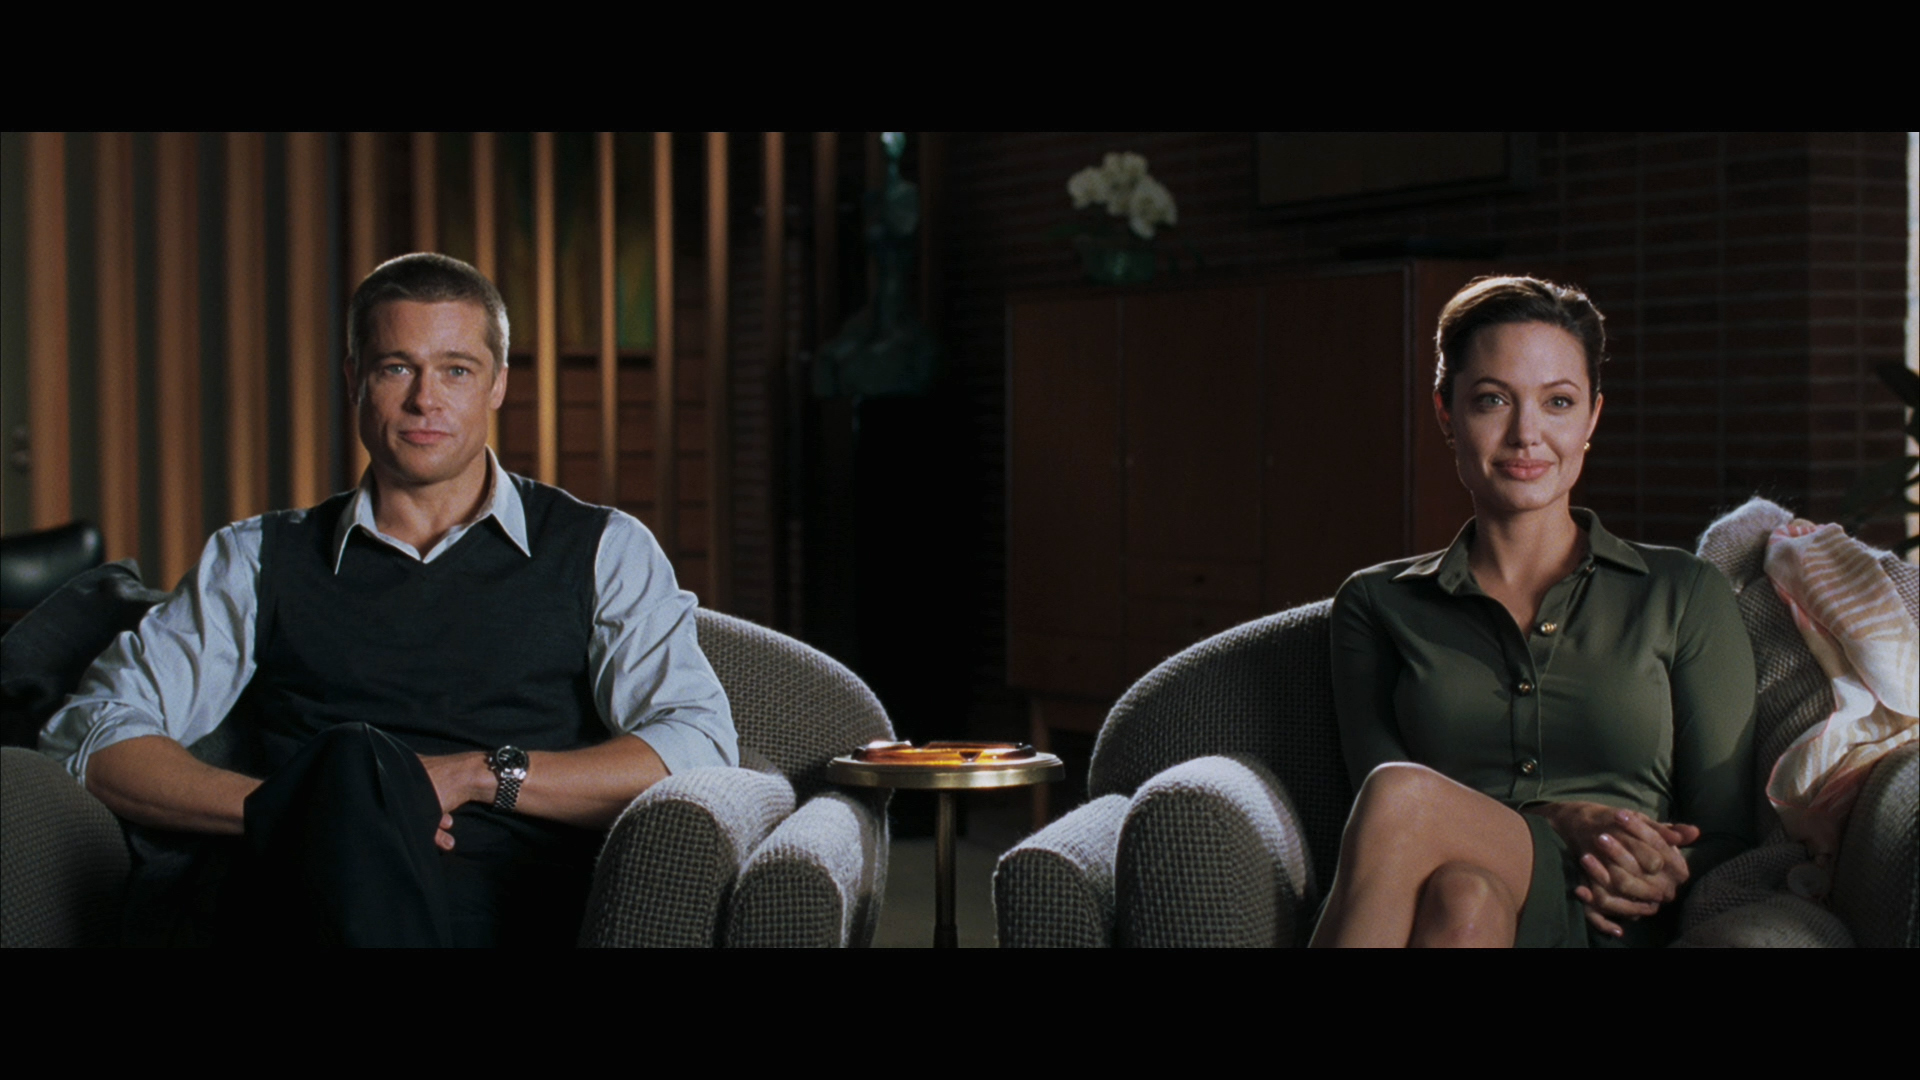 Brad Pitt & Angelina Jolie in Mr. & Mrs. Smith